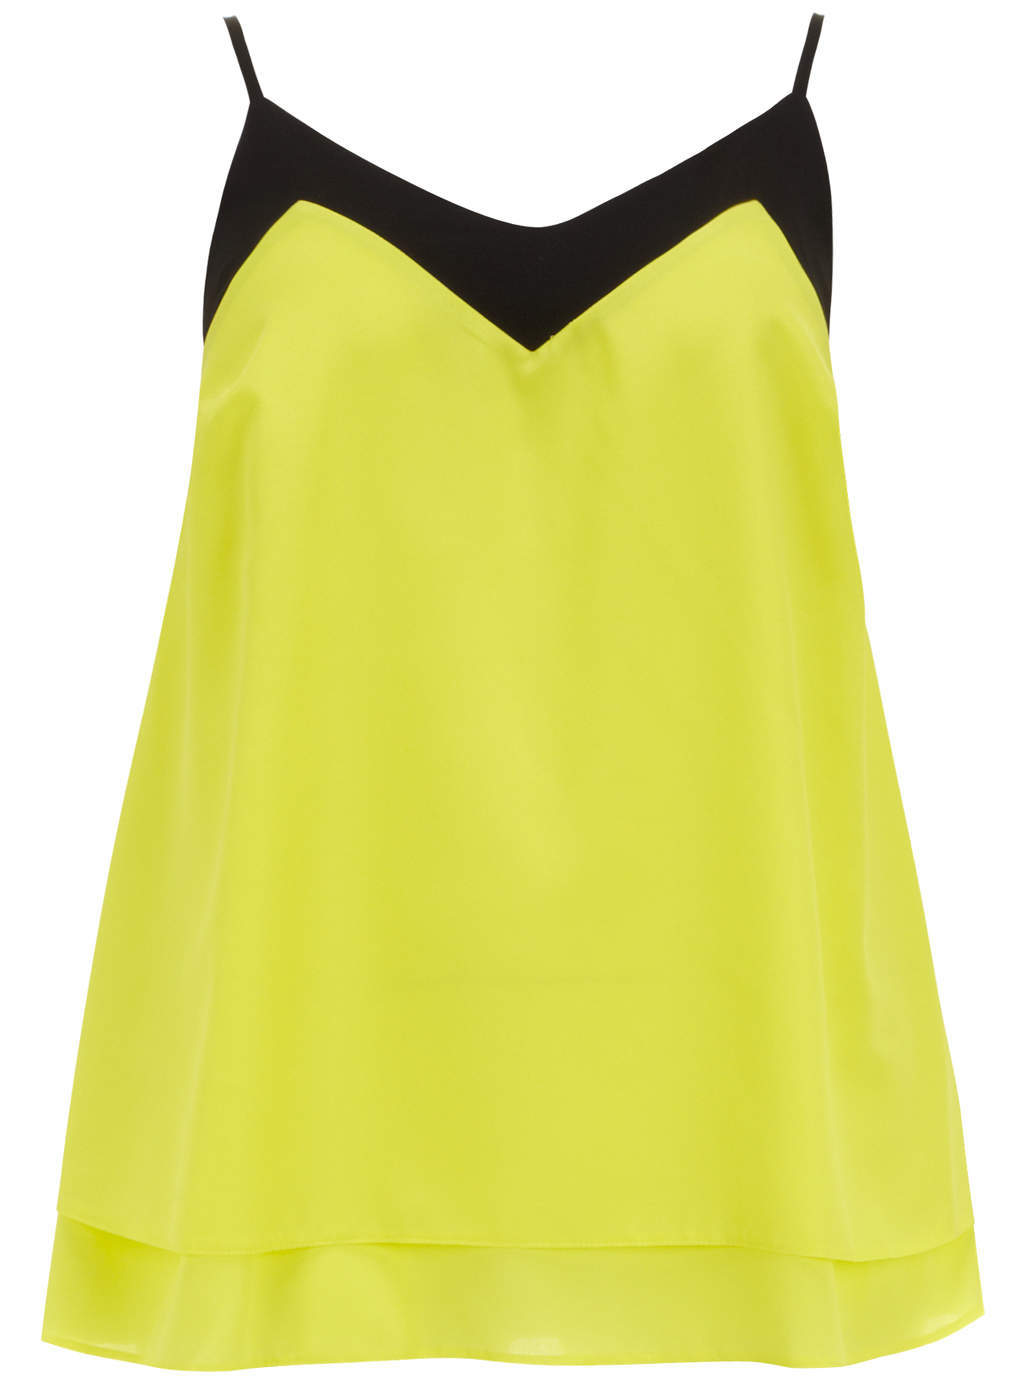 Yellow Neon Vest - neckline: low v-neck; sleeve style: spaghetti straps; length: below the bottom; style: vest top; predominant colour: yellow; secondary colour: black; occasions: casual, creative work; fibres: polyester/polyamide - 100%; fit: loose; sleeve length: sleeveless; texture group: silky - light; pattern type: fabric; pattern: colourblock; trends: hot brights; season: s/s 2014